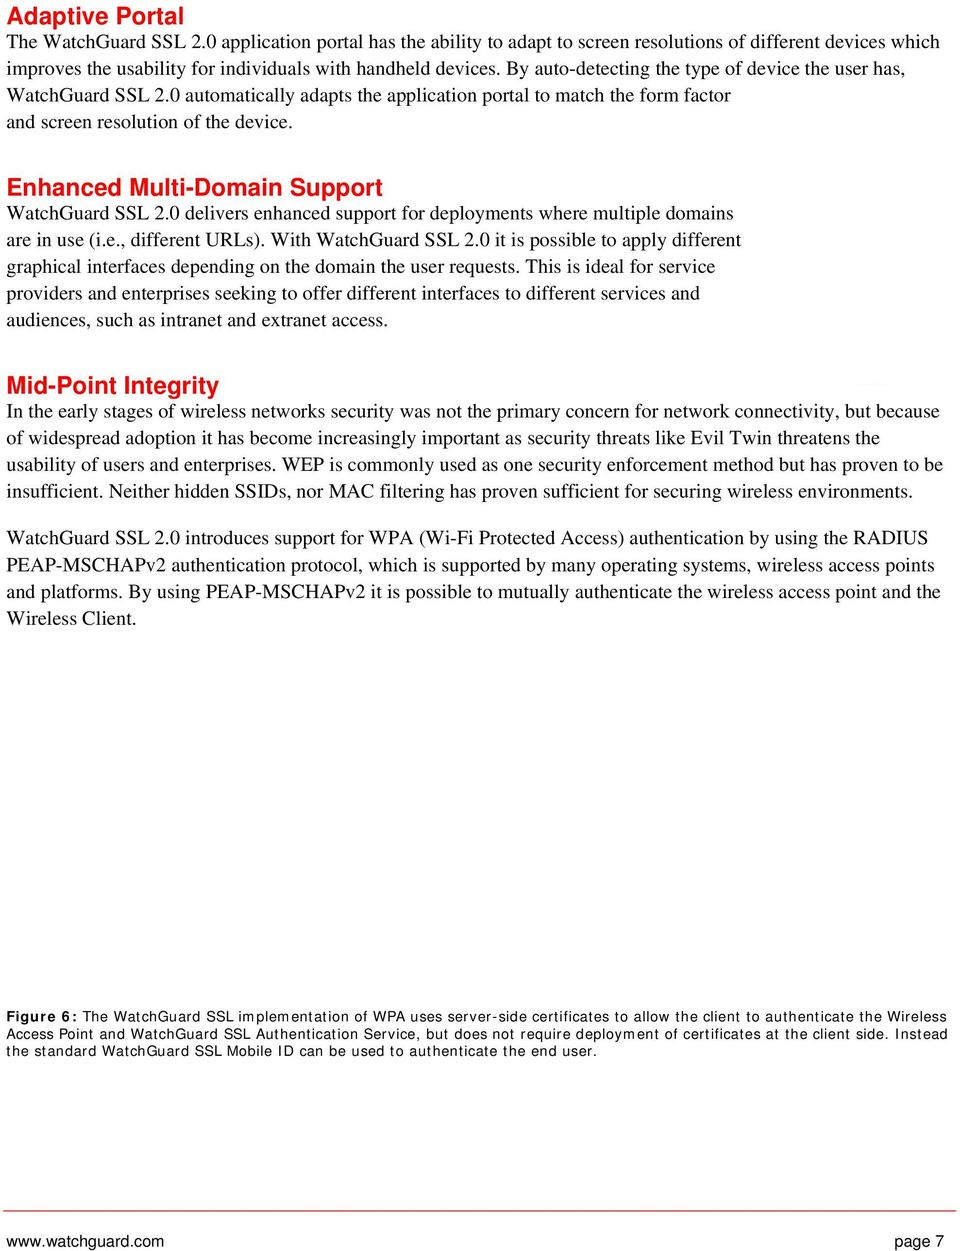 Enhanced Multi-Domain Support WatchGuard SSL 2.0 delivers enhanced support for deployments where multiple domains are in use (i.e., different URLs). With WatchGuard SSL 2.